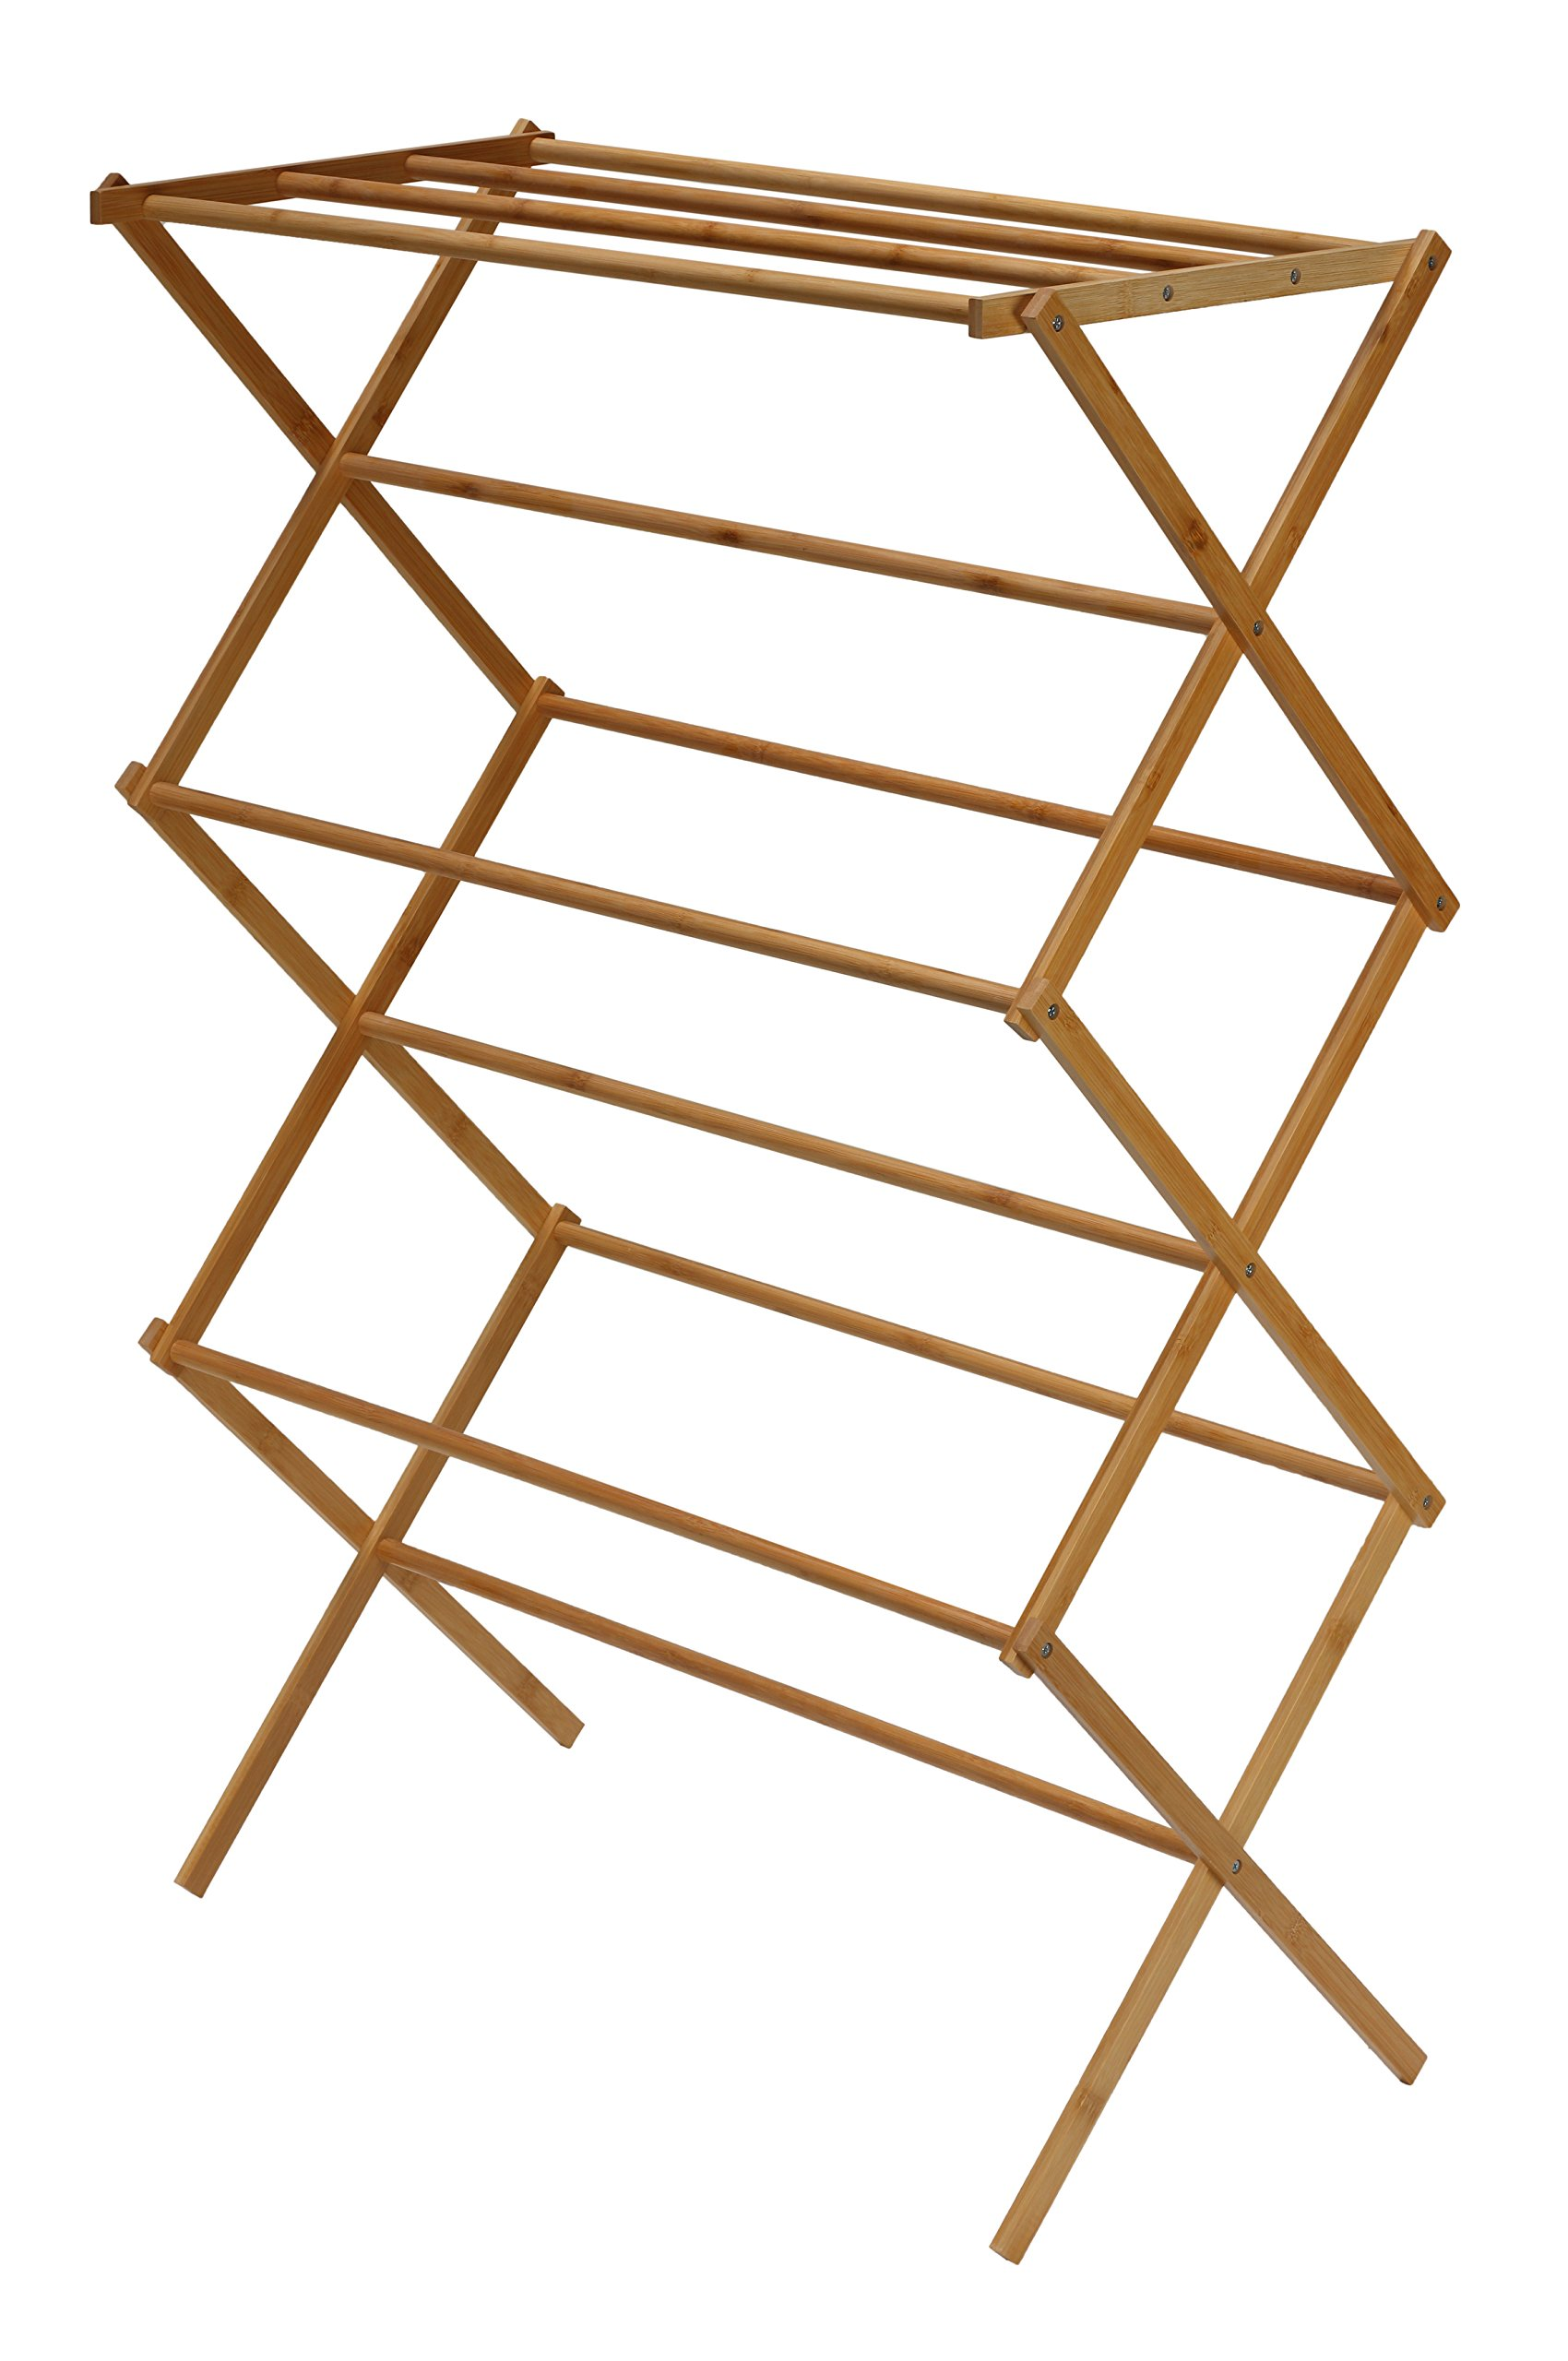 Cortesi Home Eli Natural Bamboo Clothing Drying Rack, 28.5'' W x 14.5'' L x 43'' H